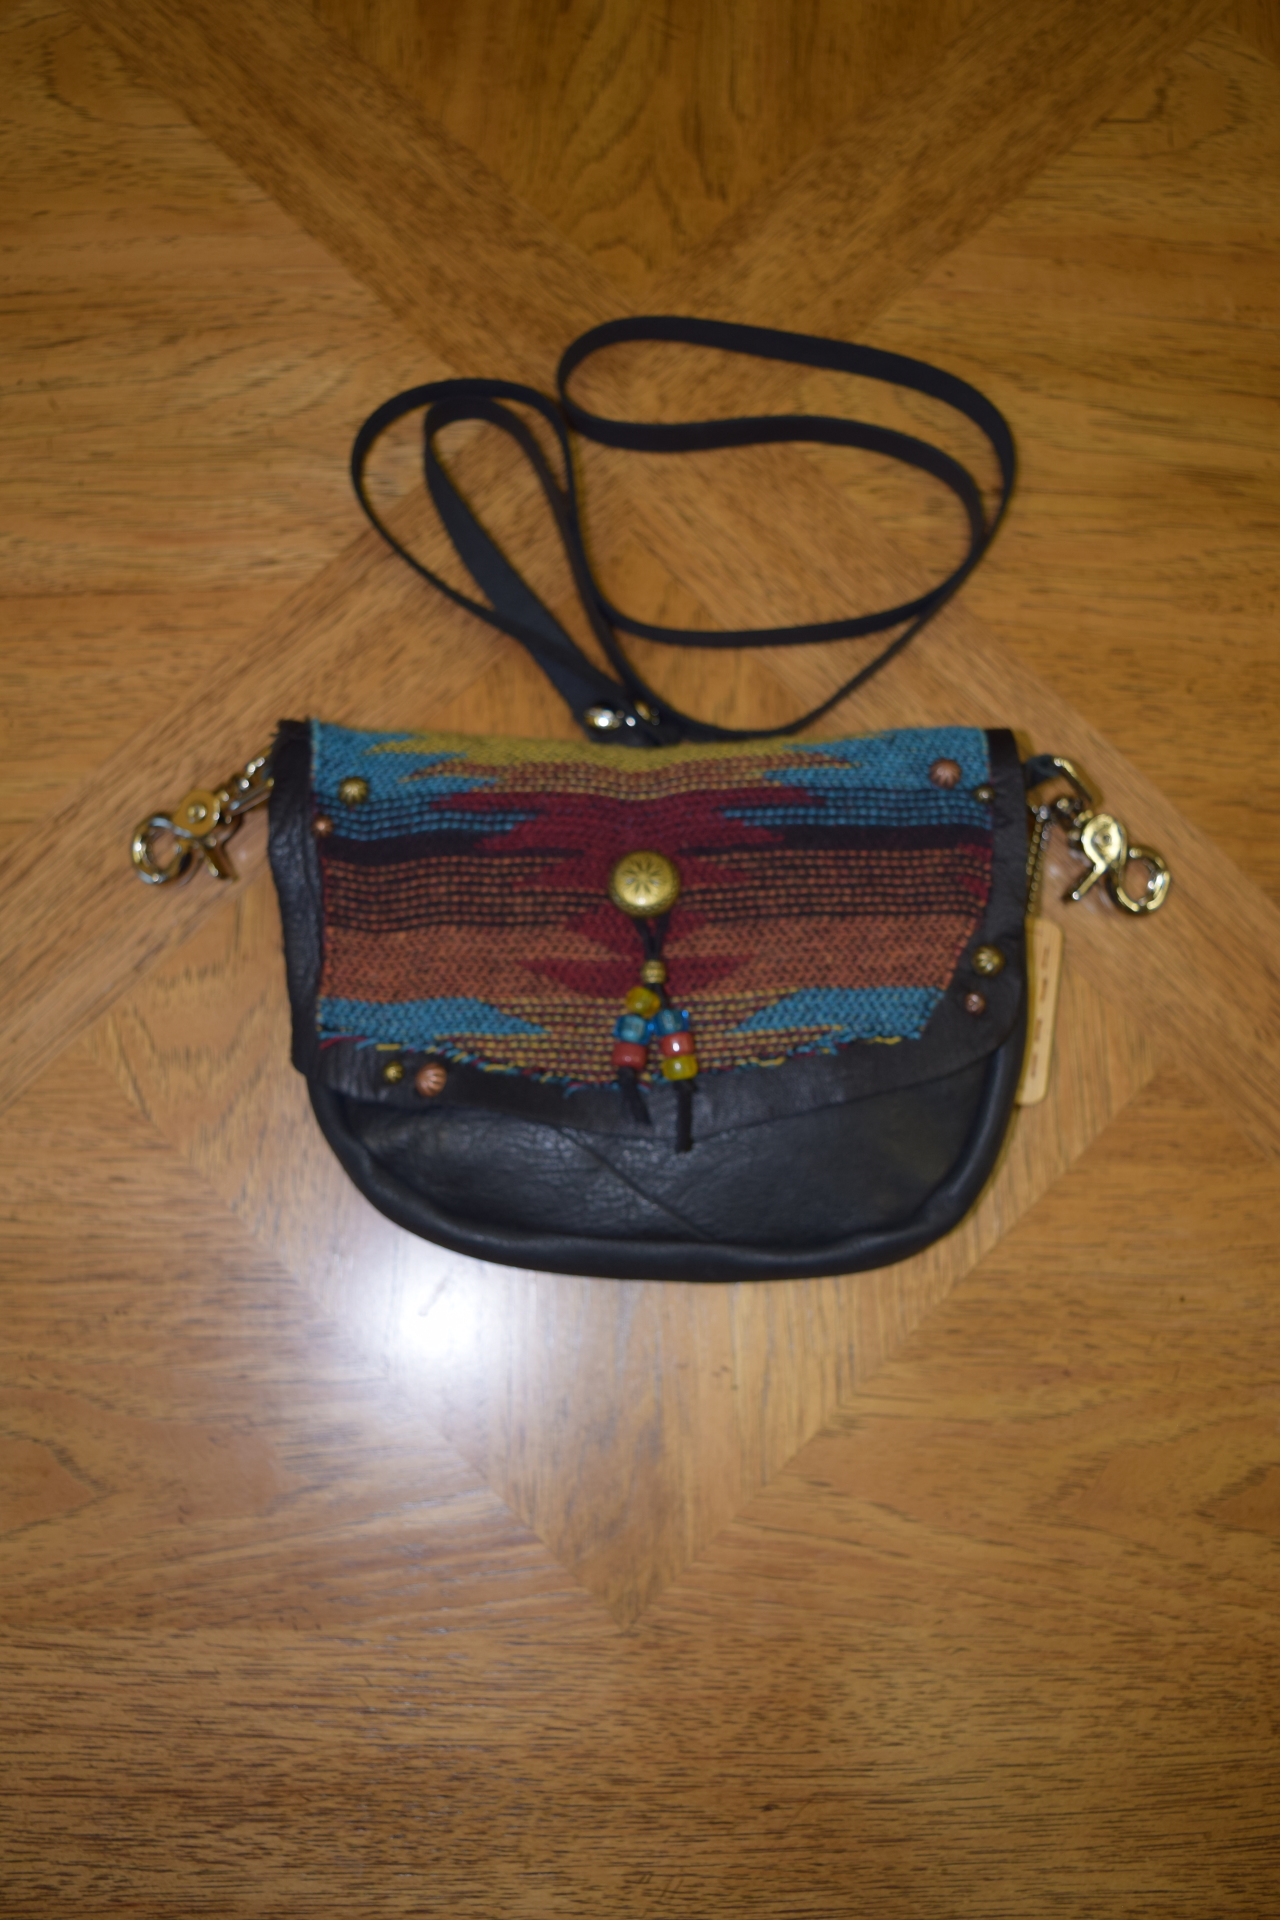 BISBEE LEATHER HIPSTER/STRAP BAG - $110.00